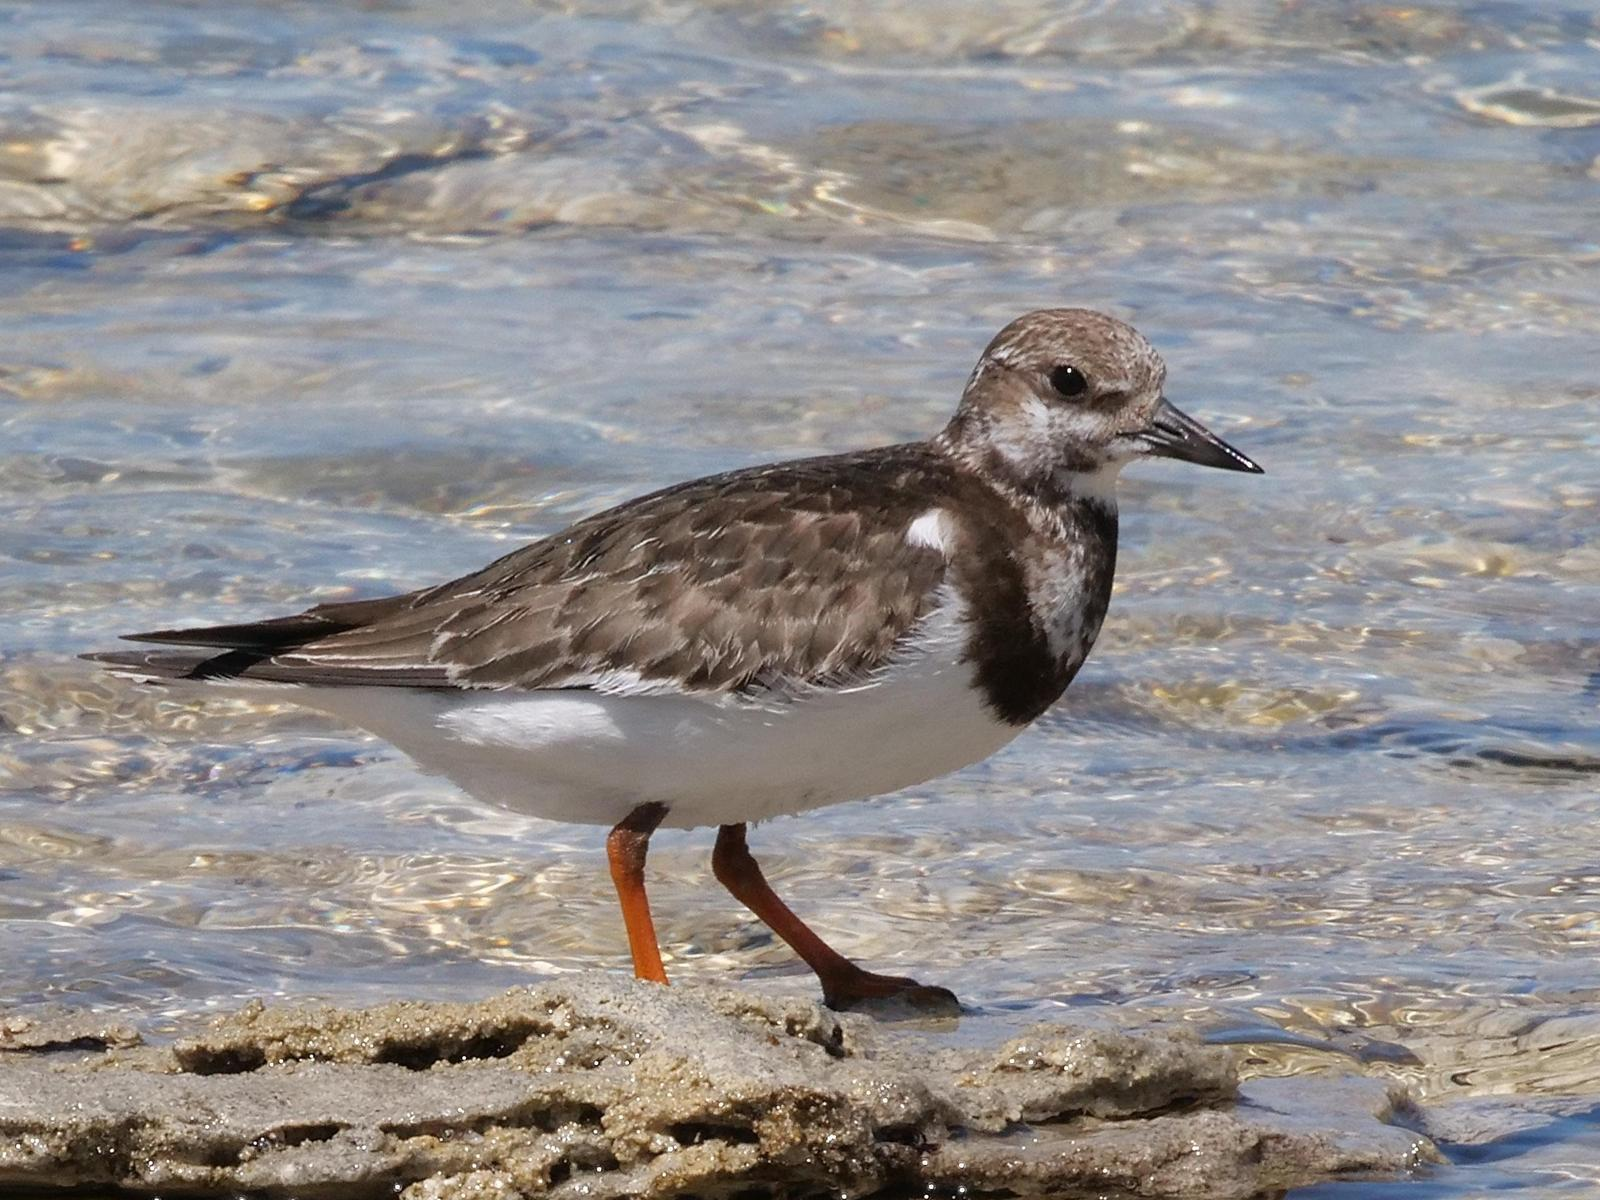 Ruddy Turnstone Photo by Peter Lowe